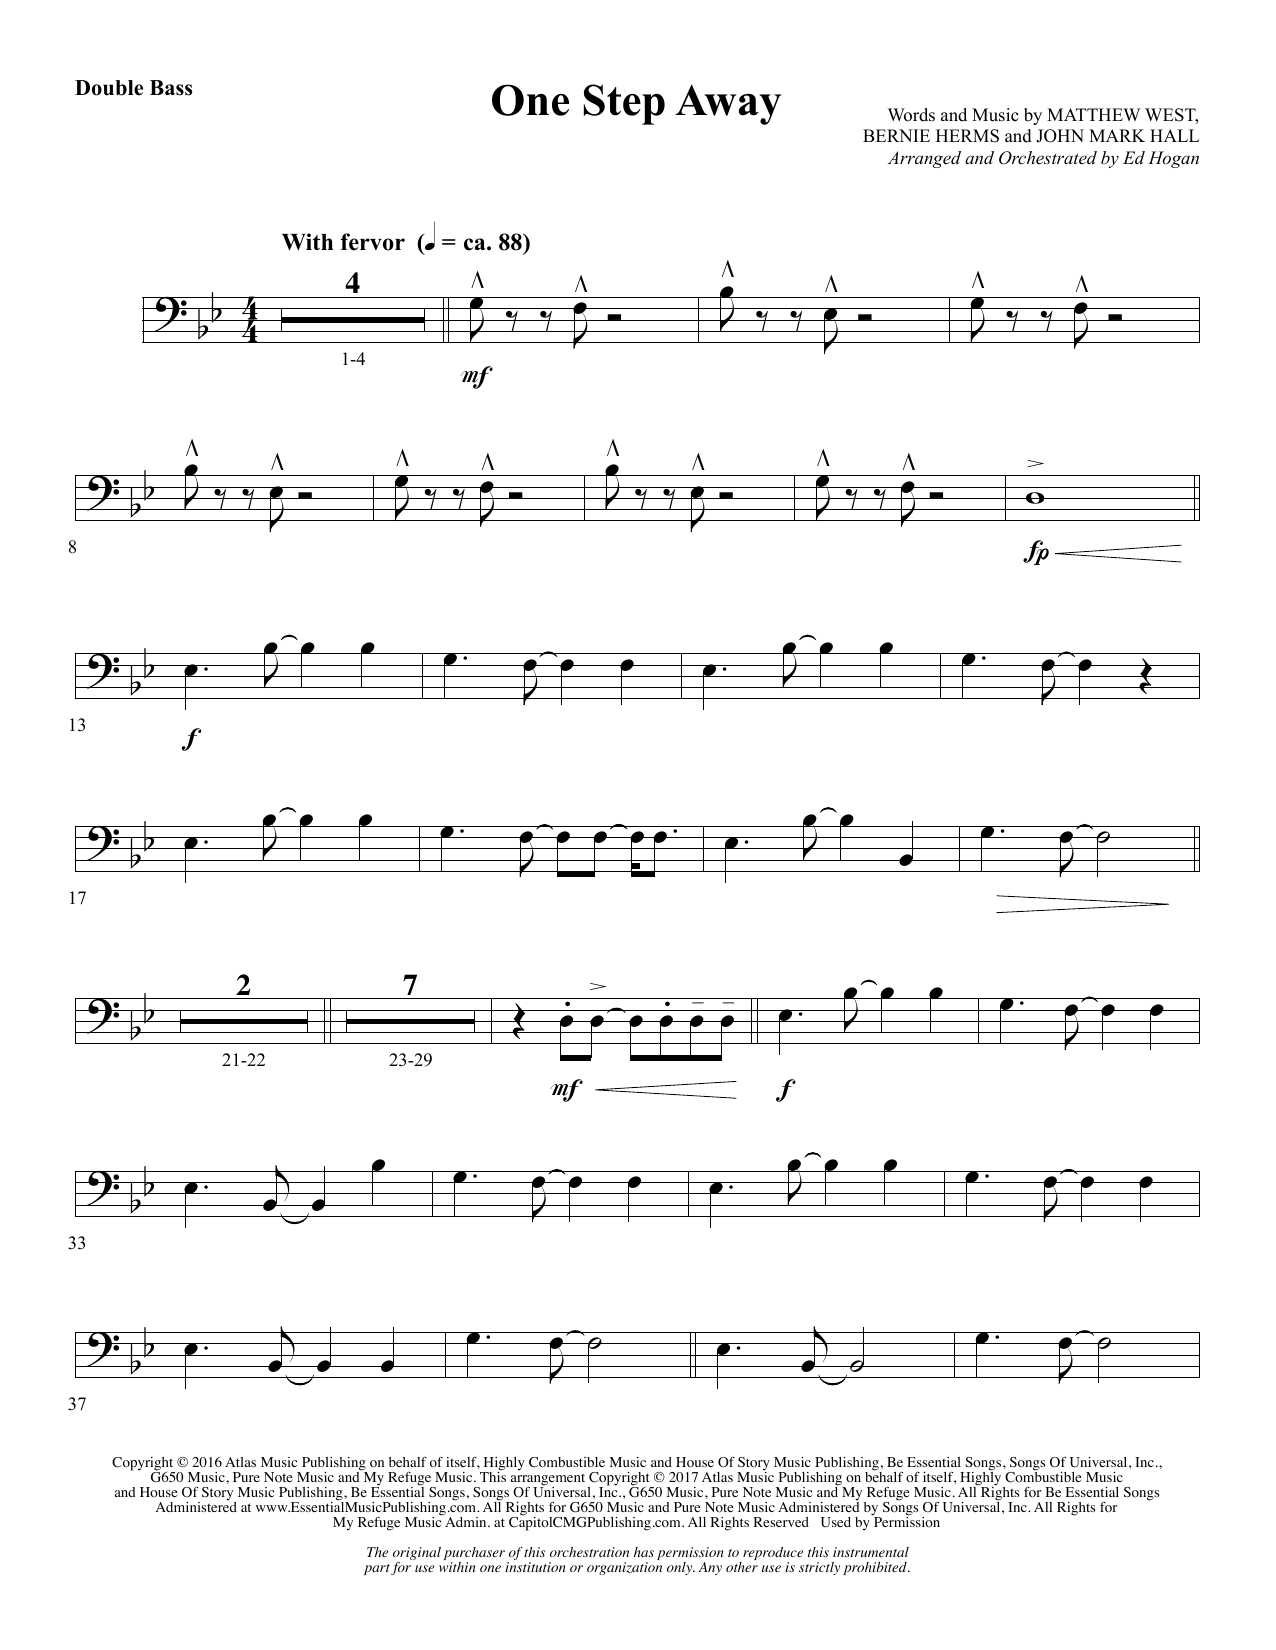 Ed Hogan One Step Away - Double Bass sheet music notes and chords. Download Printable PDF.